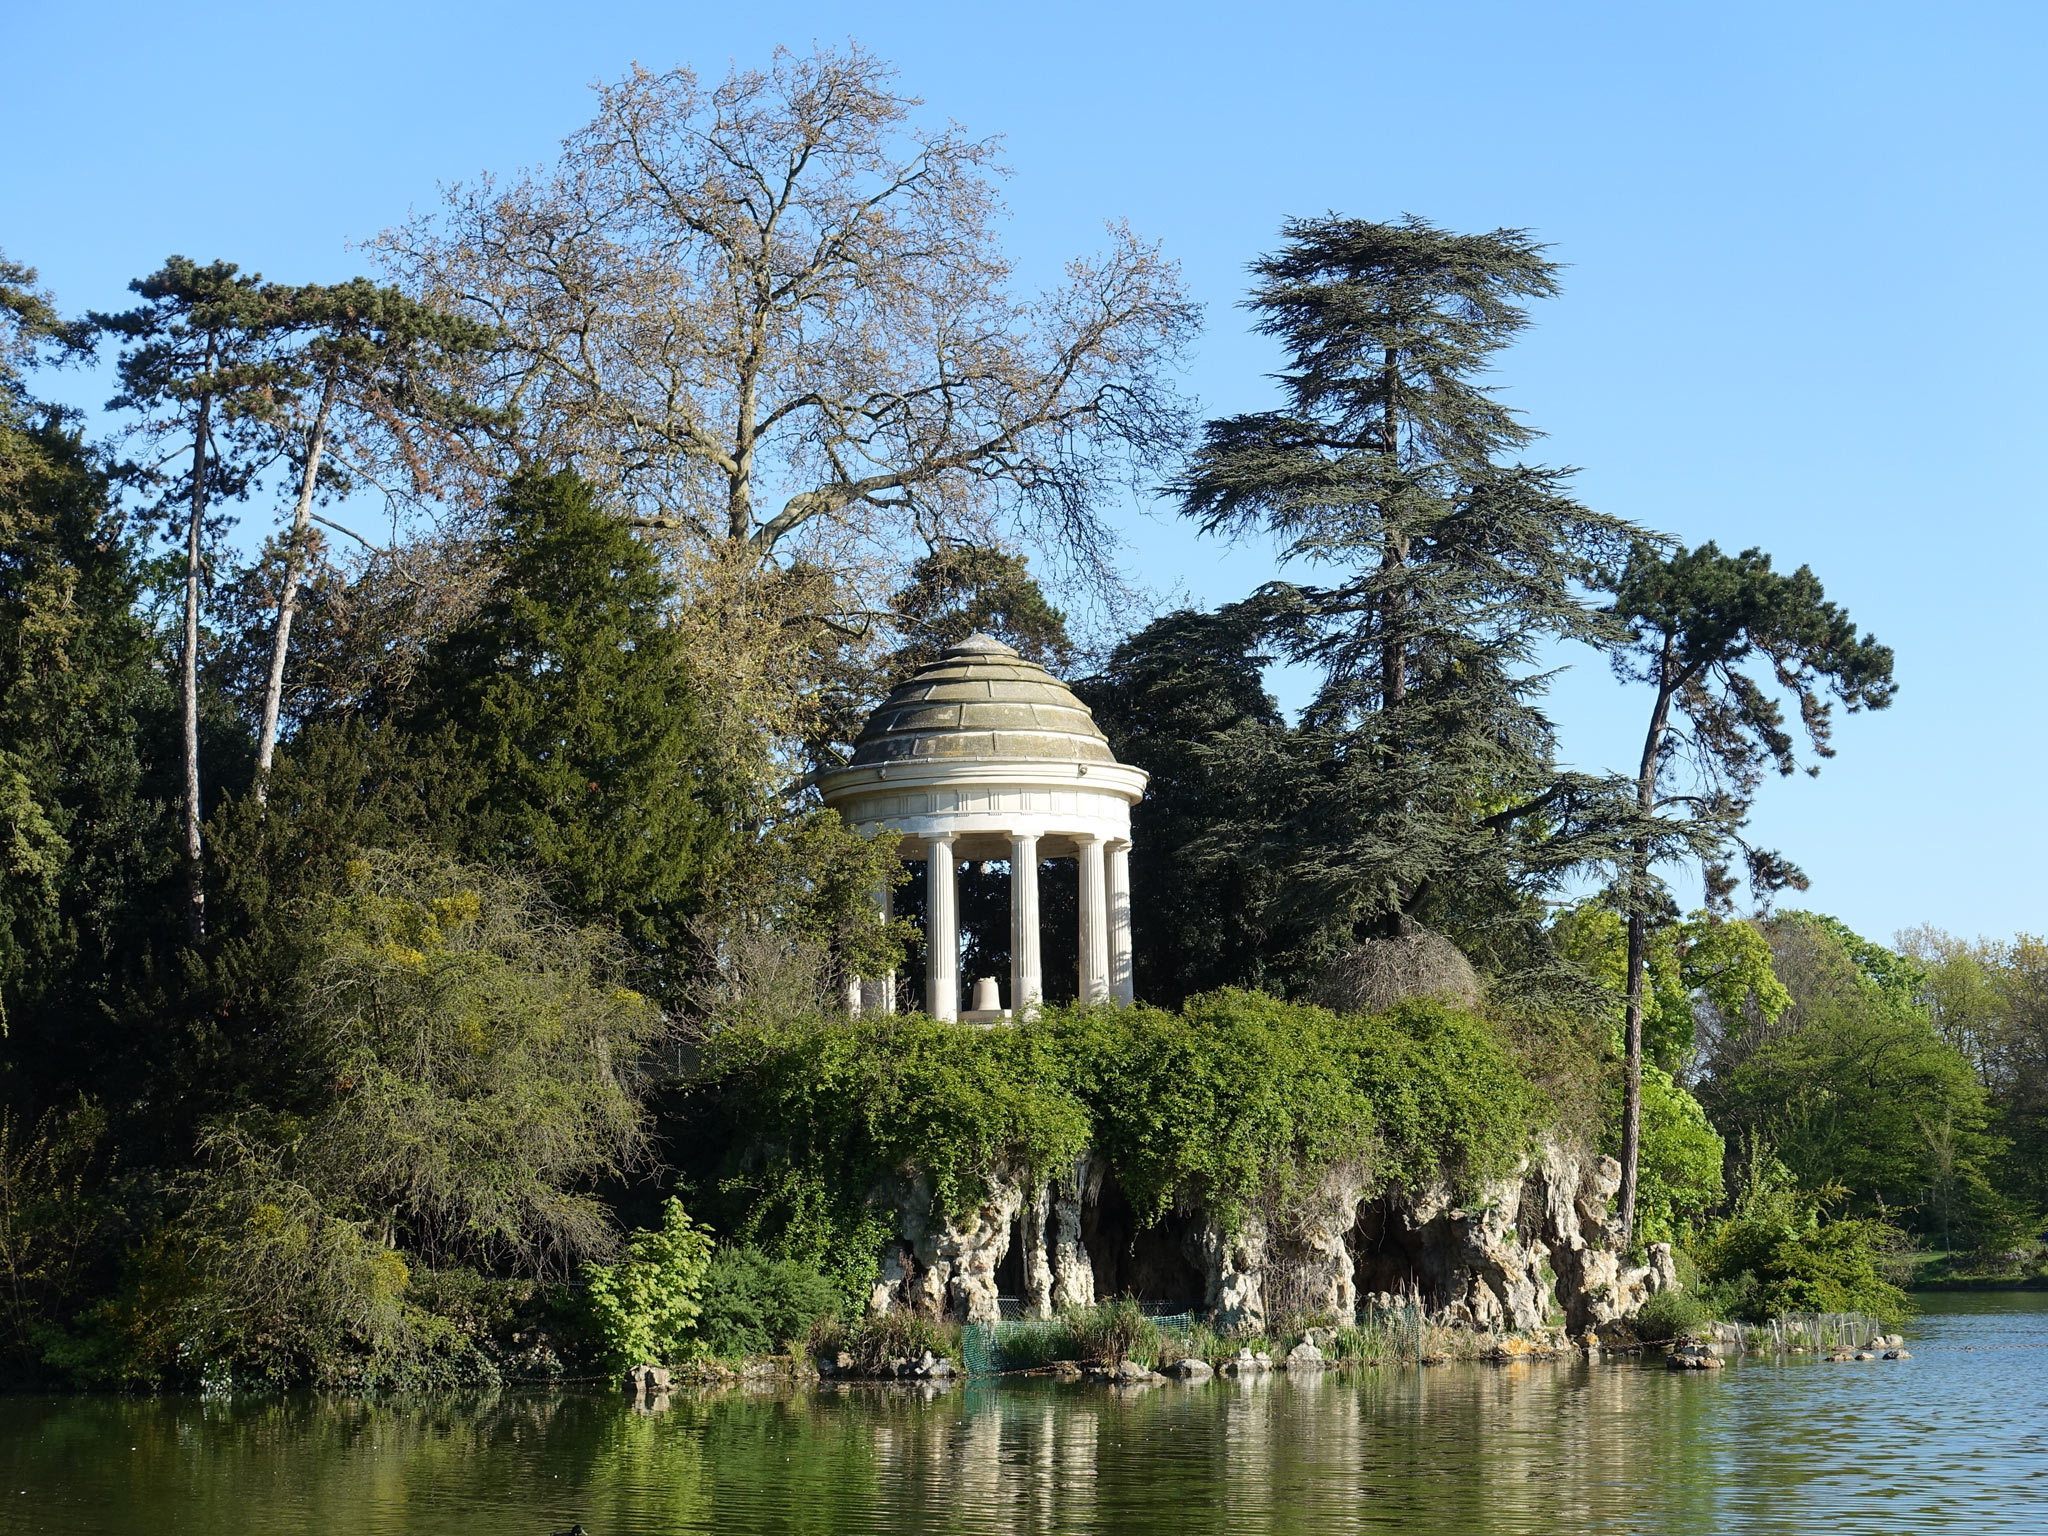 A folly in the Bois de Vincennes just outside Paris